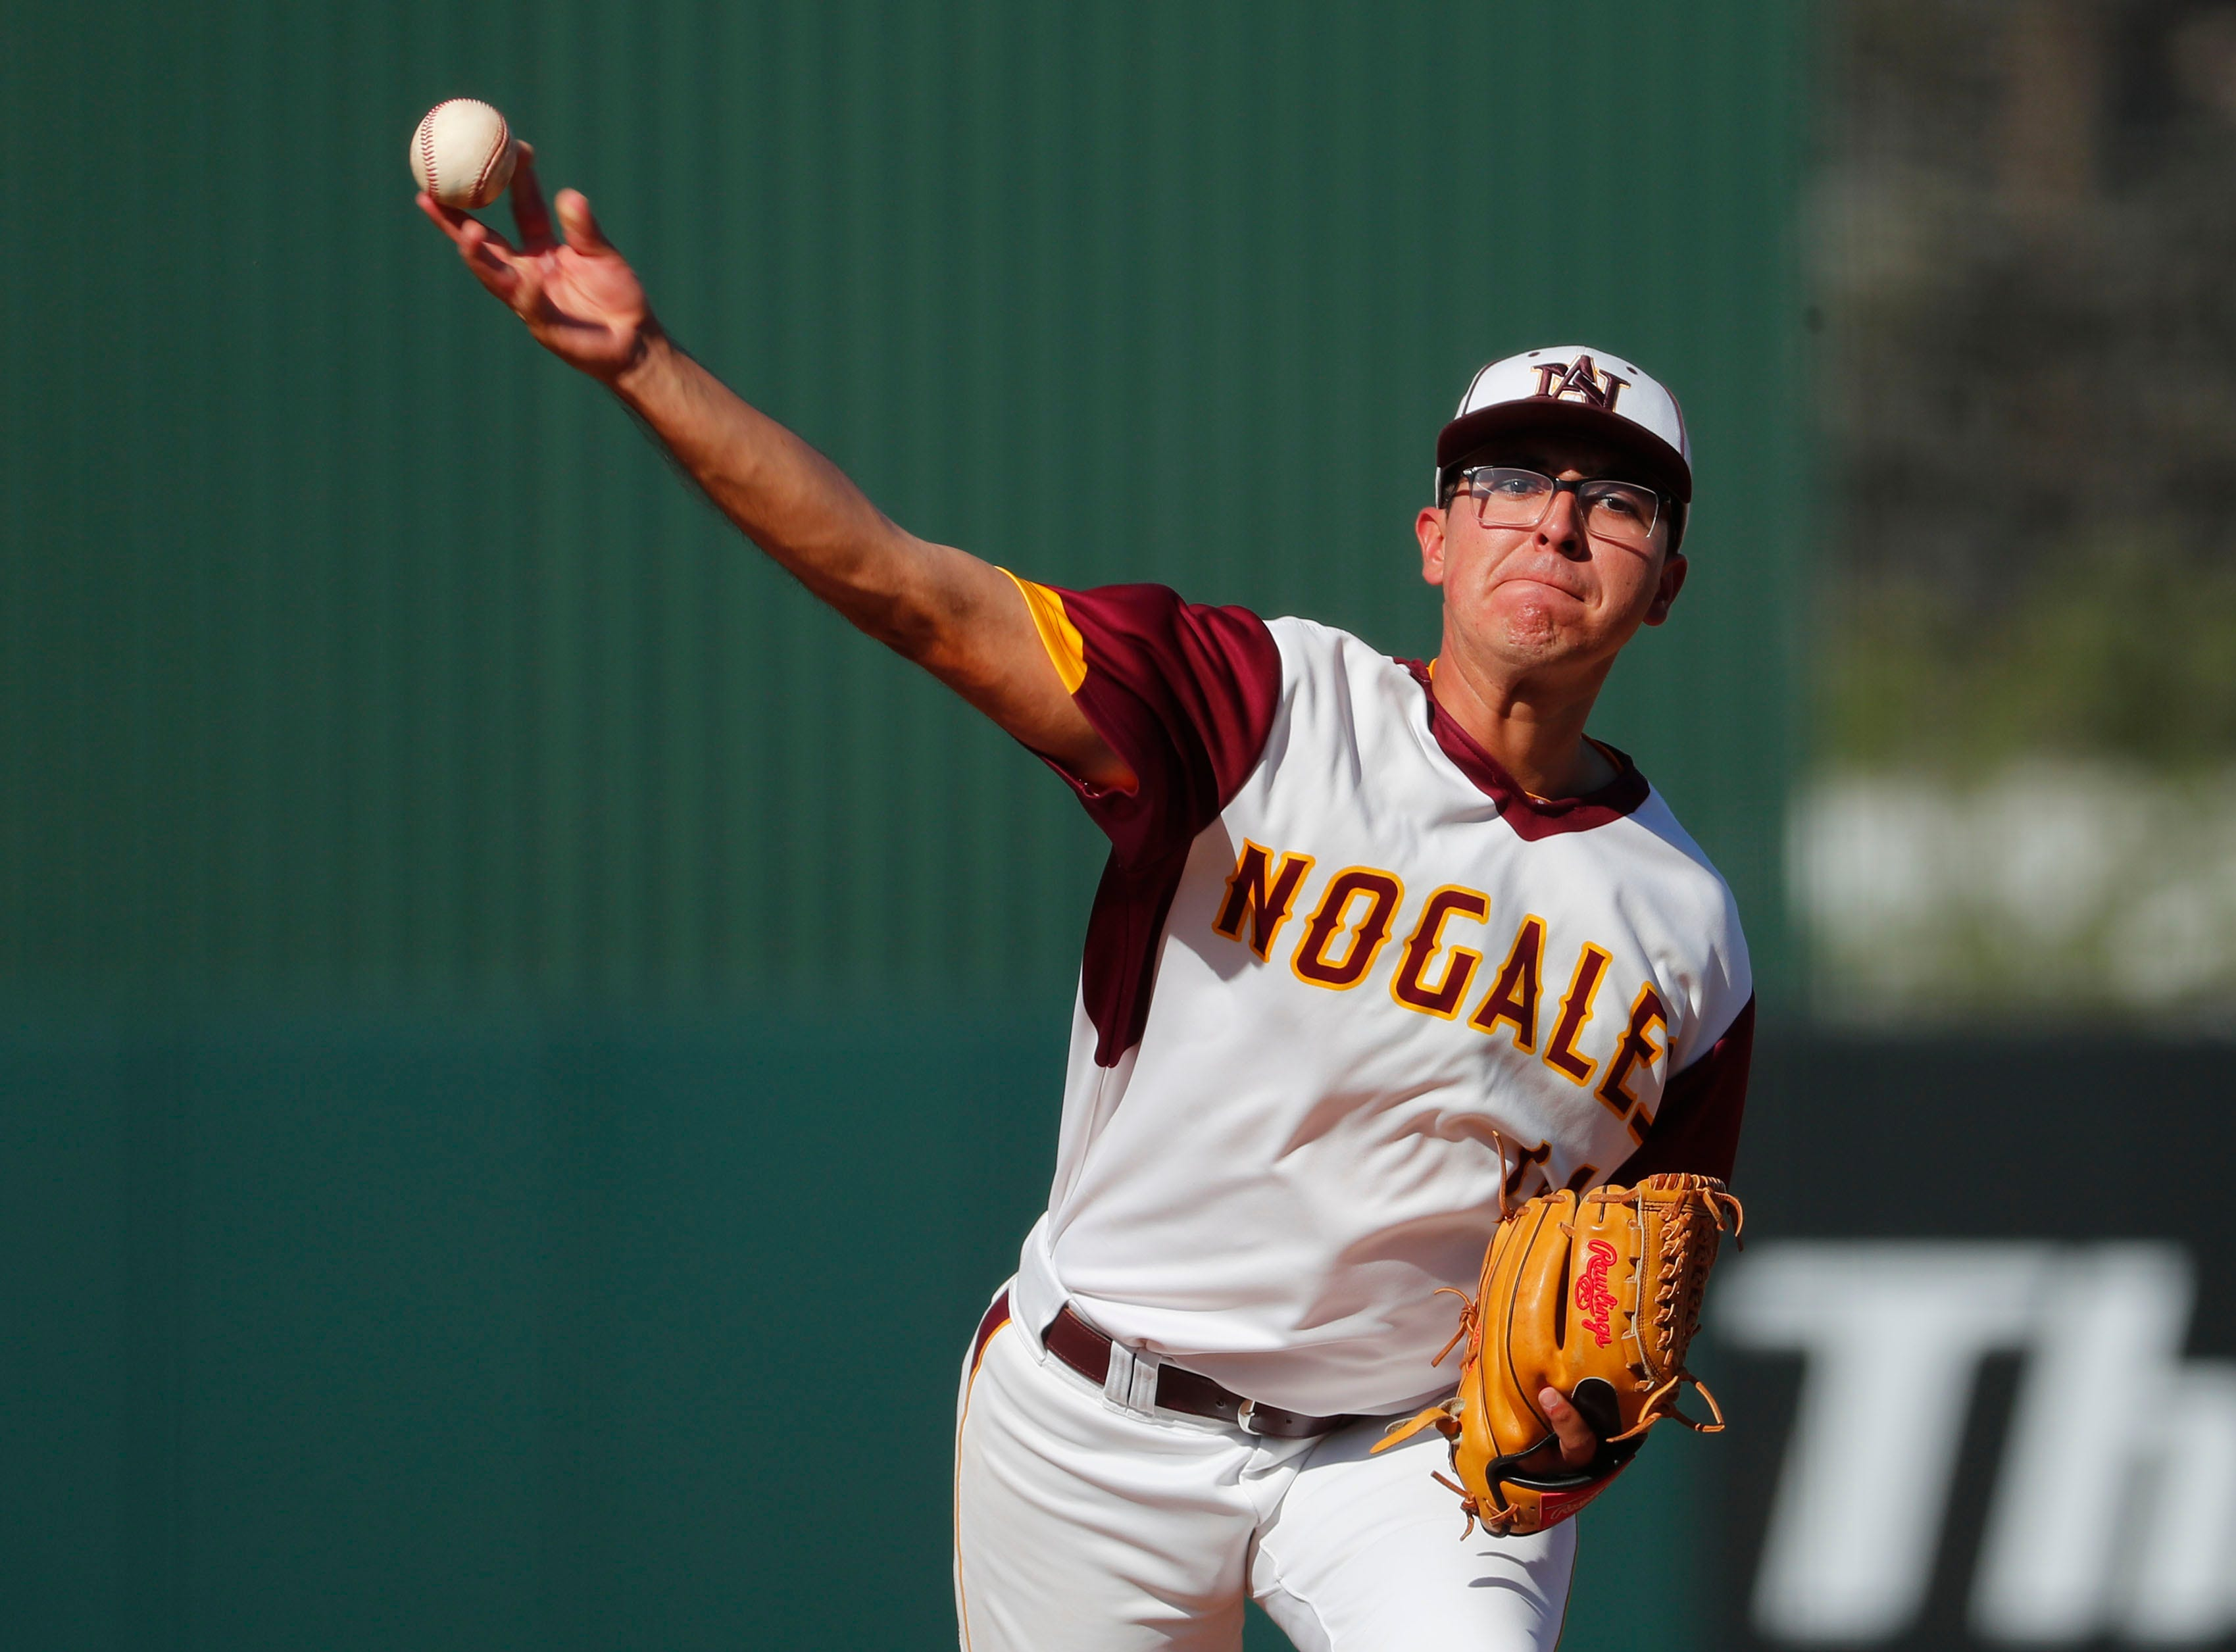 Nogales pitcher Alec Acevedo (14) throws against Horizon during the 5A State Baseball Championship in Tempe, Ariz. May 14, 2019.